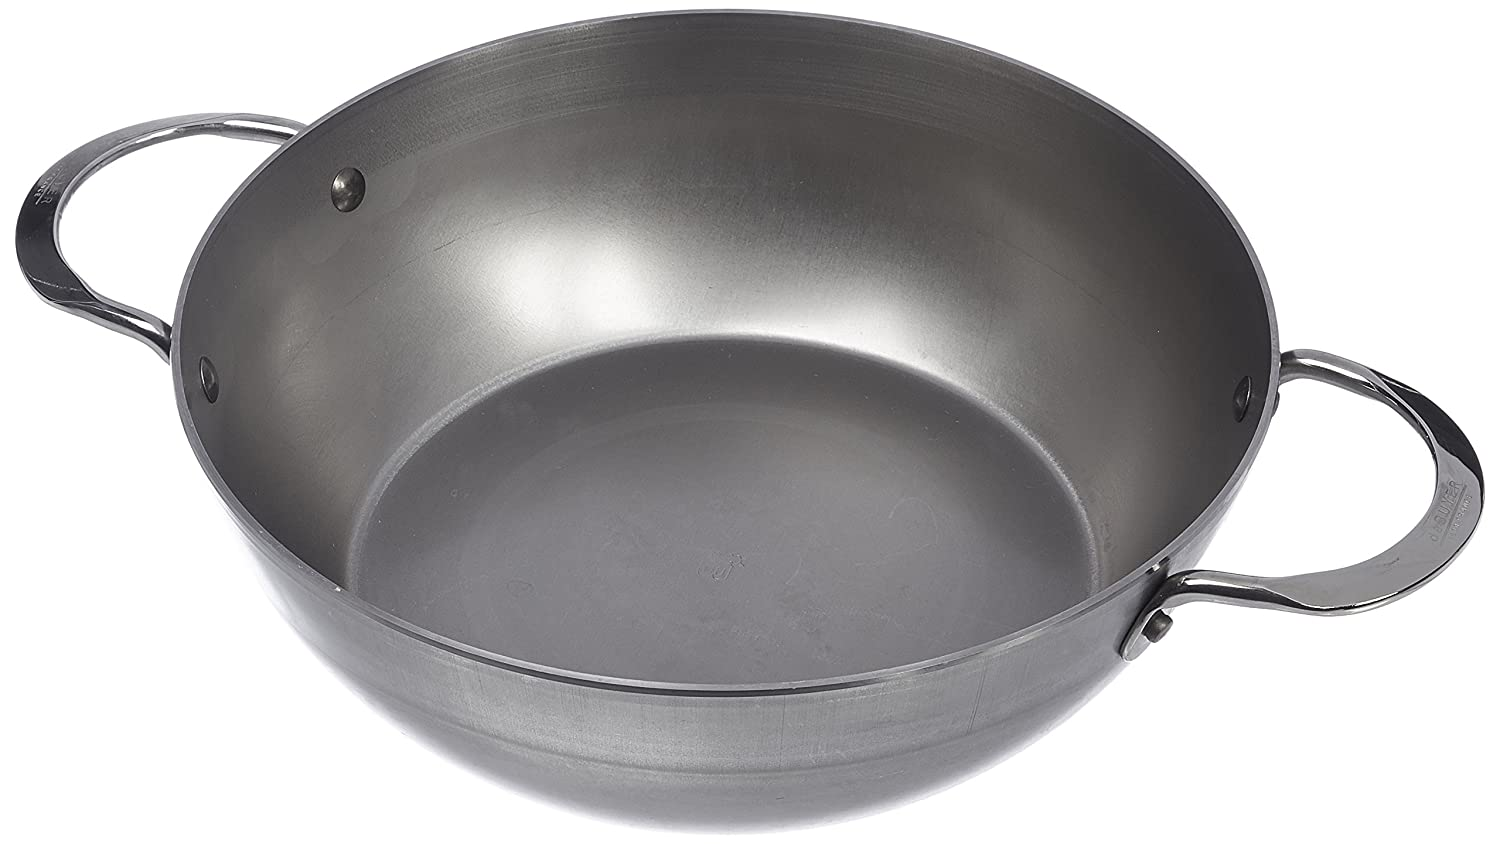 MINERAL B Round Country Chef Carbon Steel Fry Pan 11-Inch with 2 handles